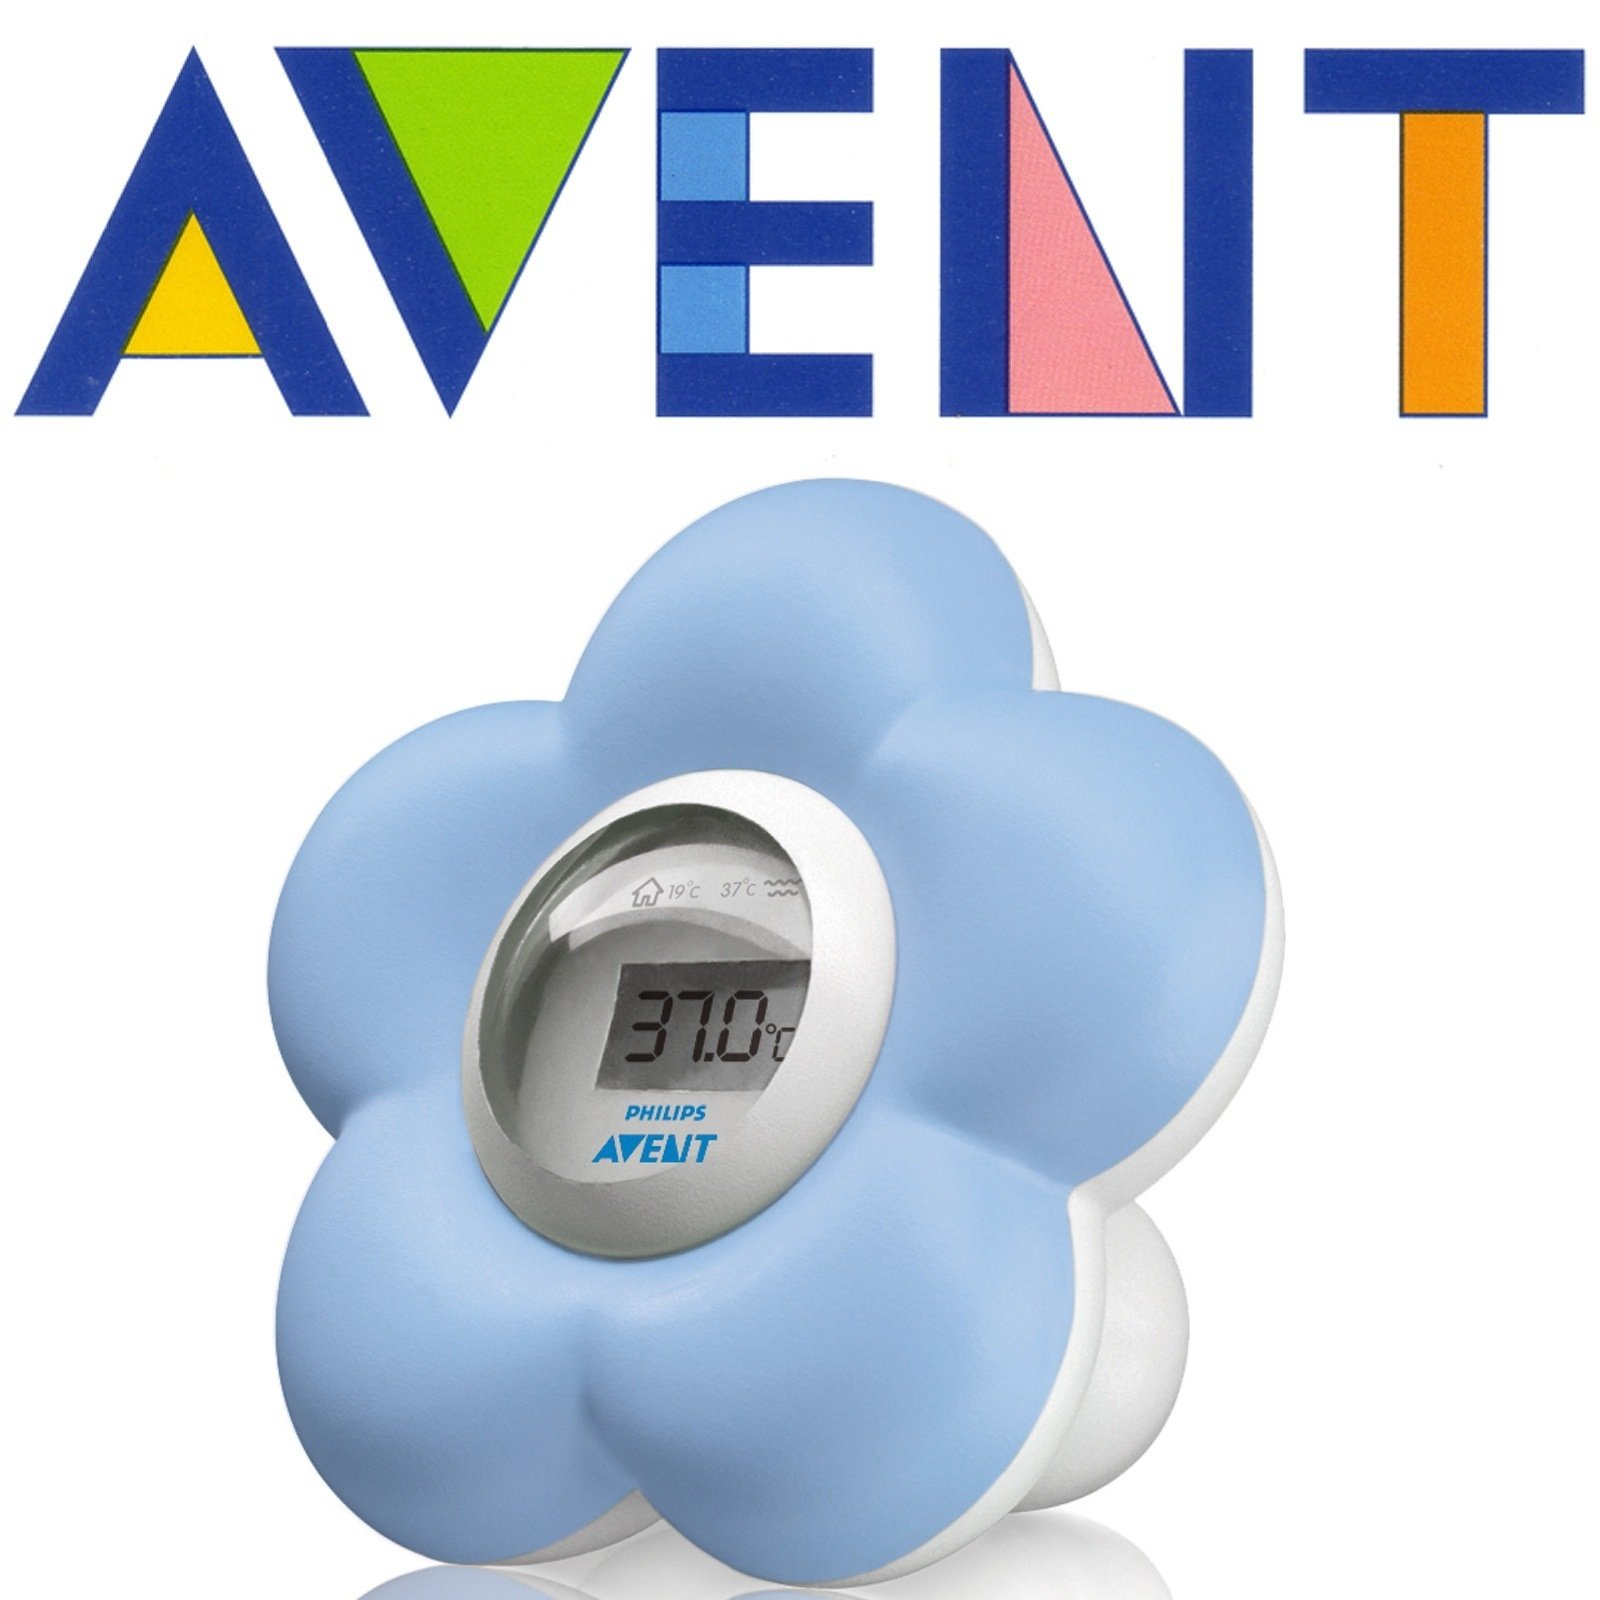 Philips Avent Digital Baby Bath and Room Thermometer Scf550/20 High Quality Best Seller Fast Shipping Ship Worldwide From Heng Heng Shop